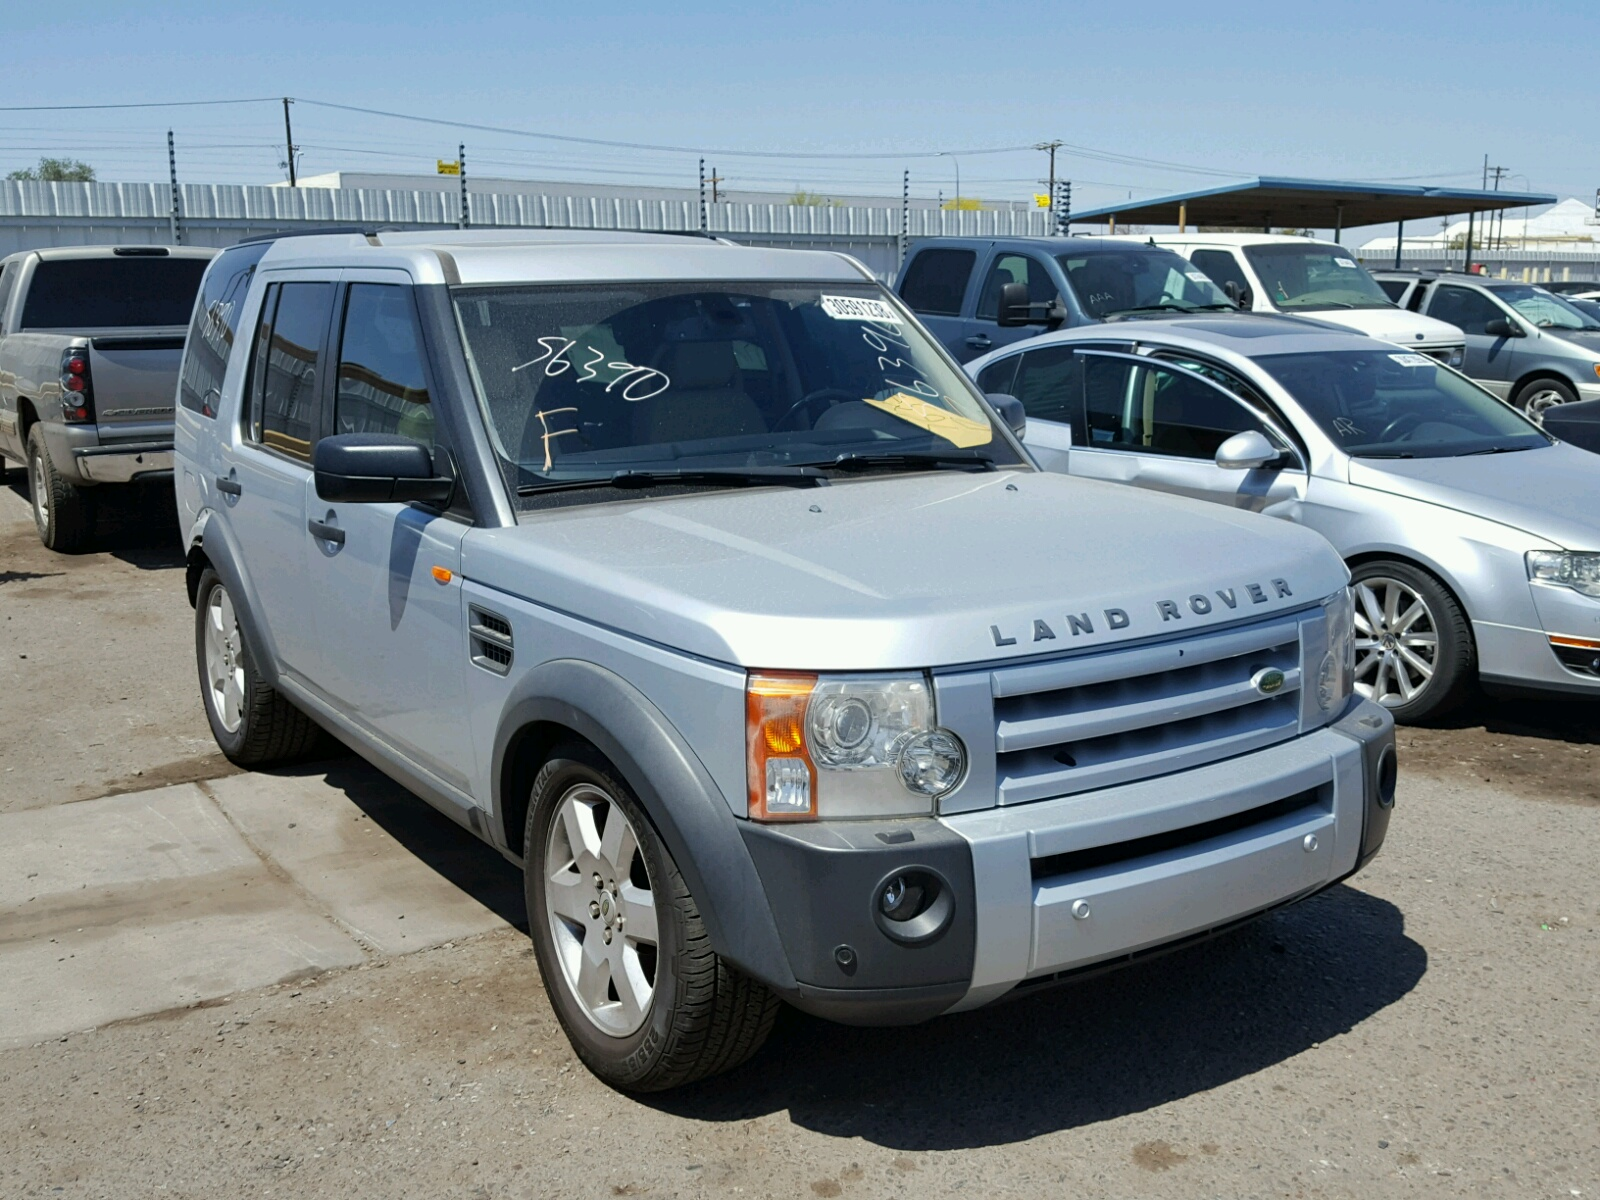 left on online landrover copart lot tx salvage rover en sale antonio in title auto auctions view silver land hse vehicle for carfinder san